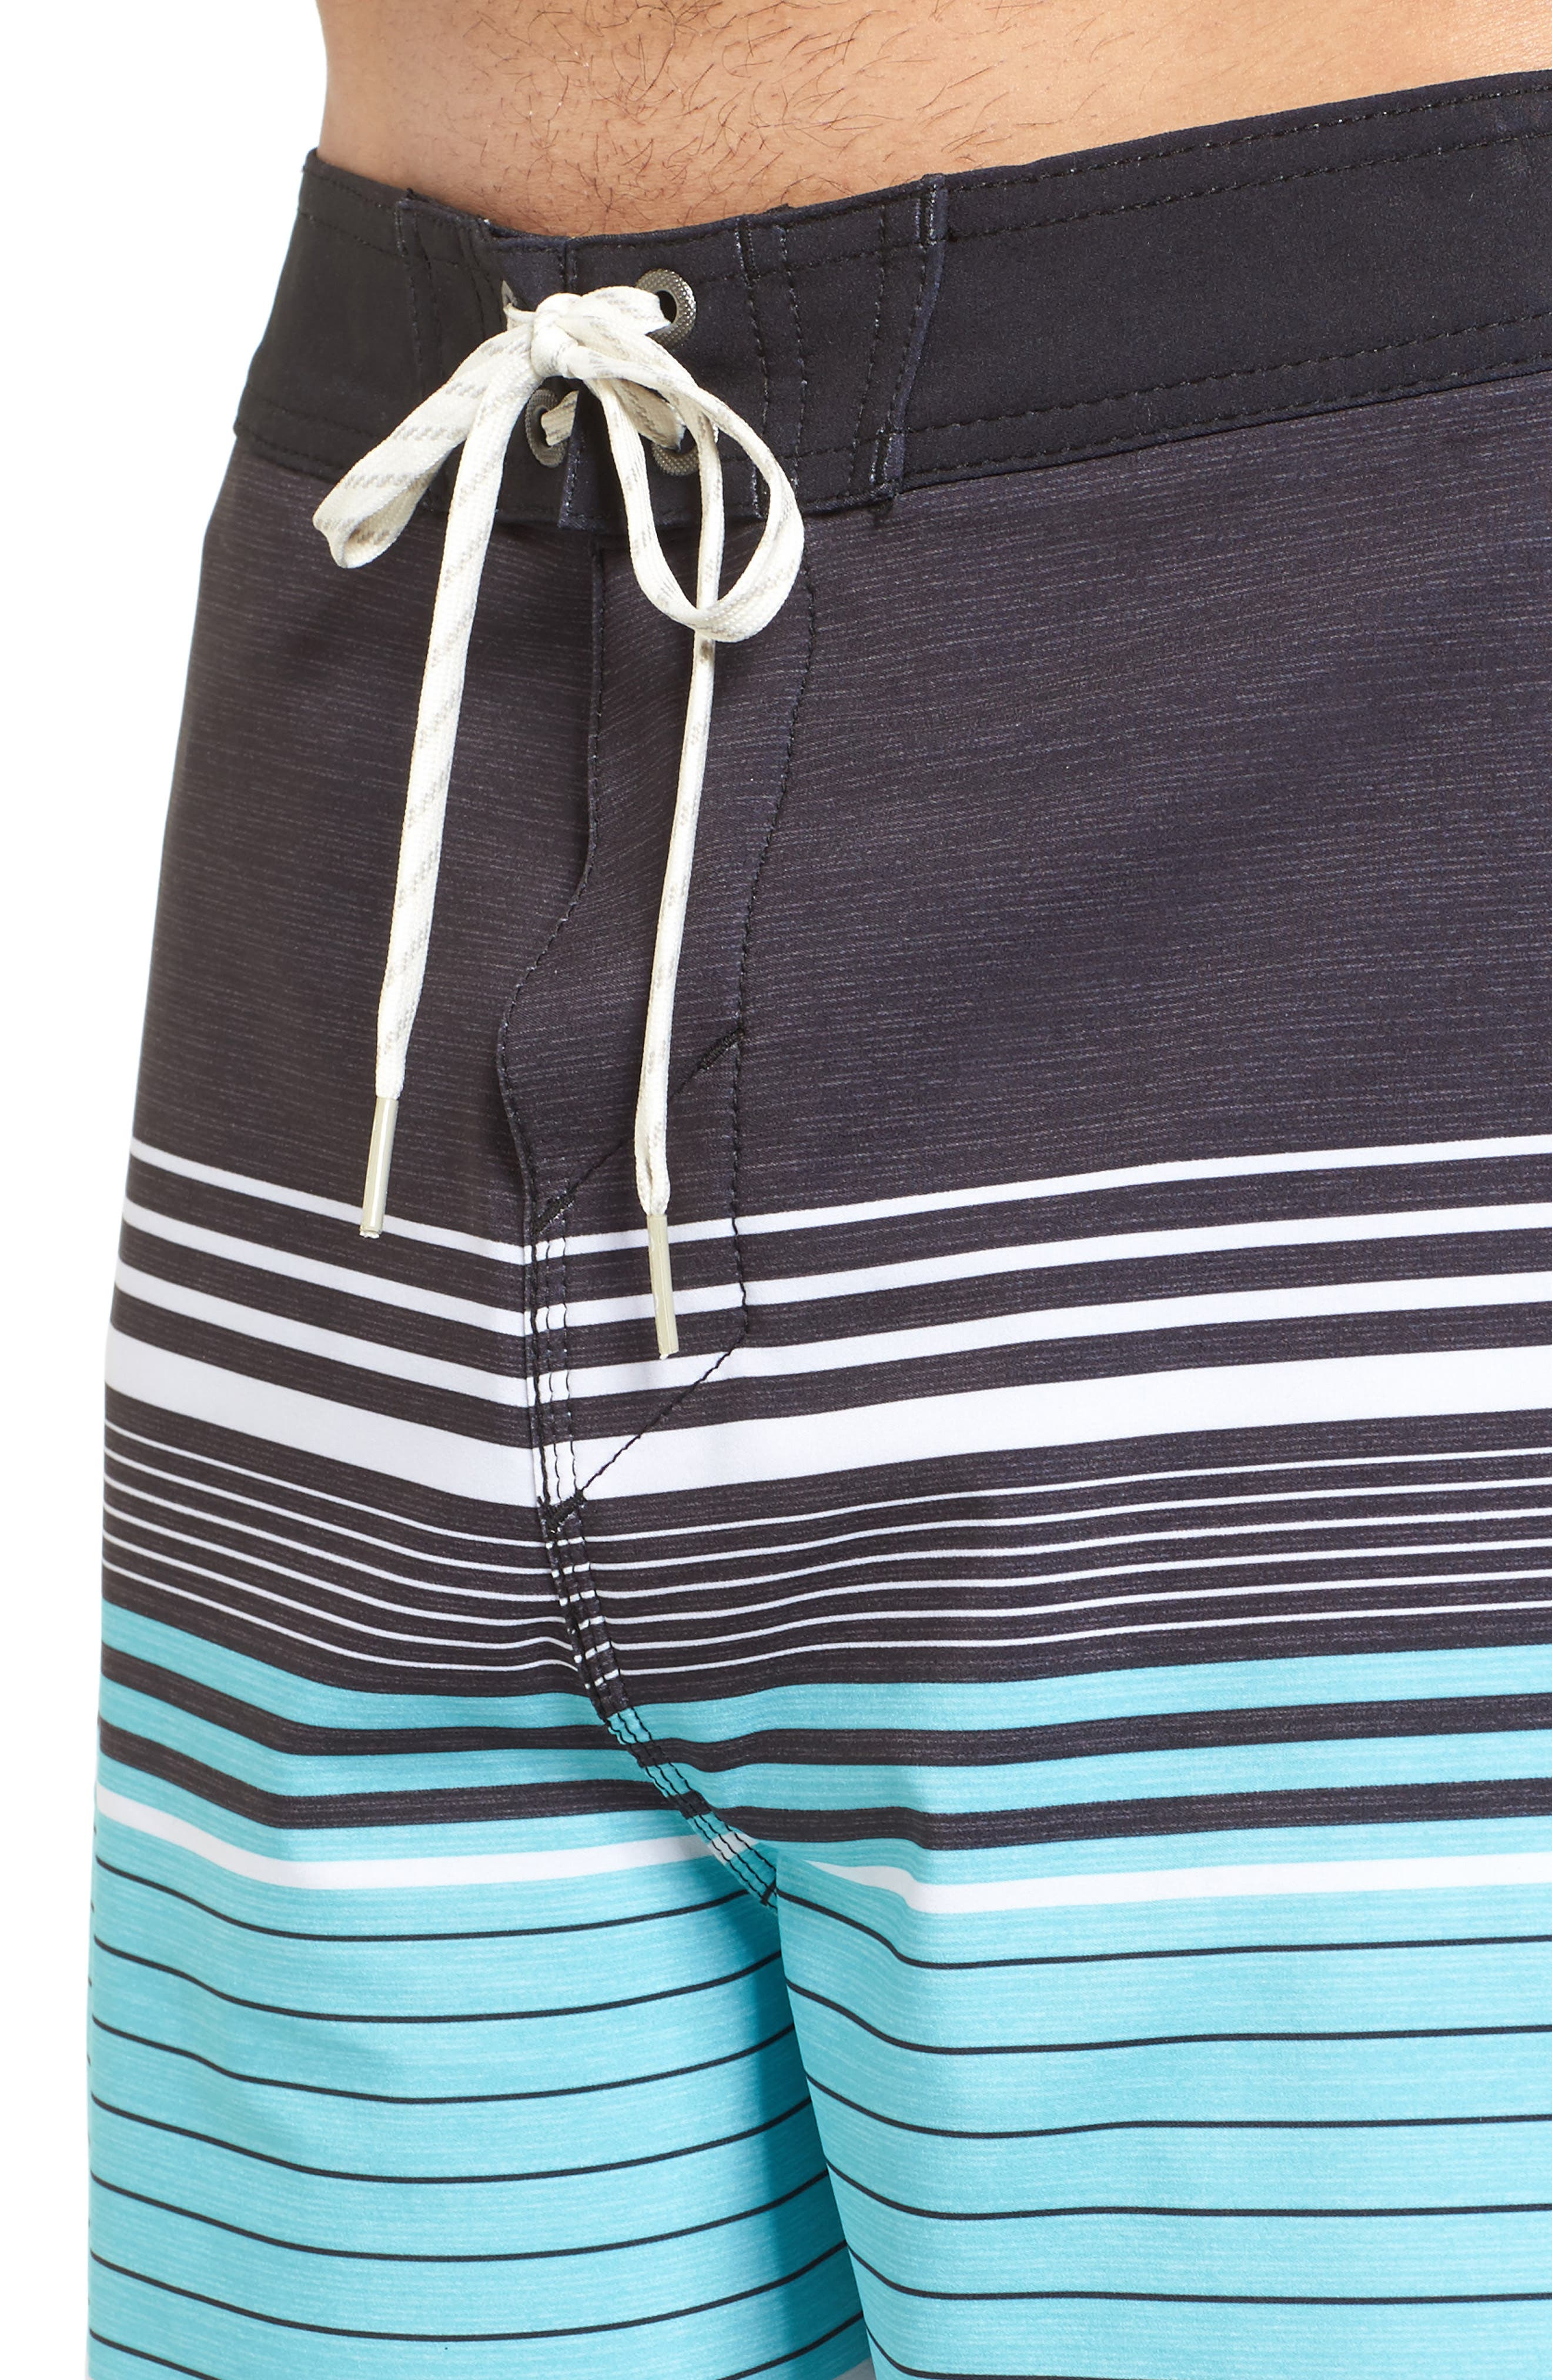 Frontiers Stretch Board Shorts,                             Alternate thumbnail 4, color,                             001